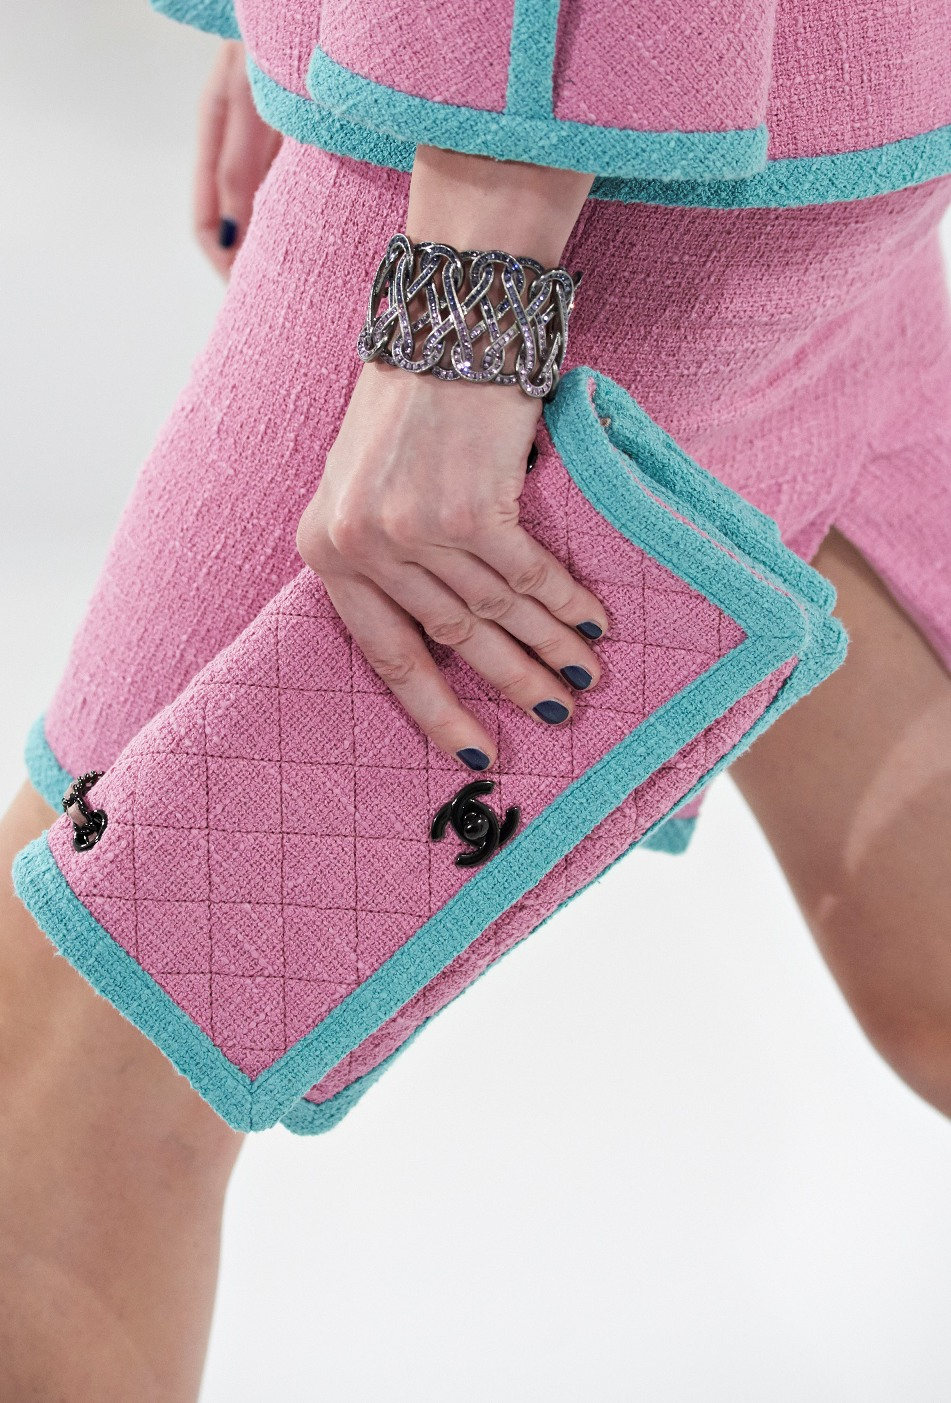 chanel-seoul-resort-cruise-2016-bags-accessories-12